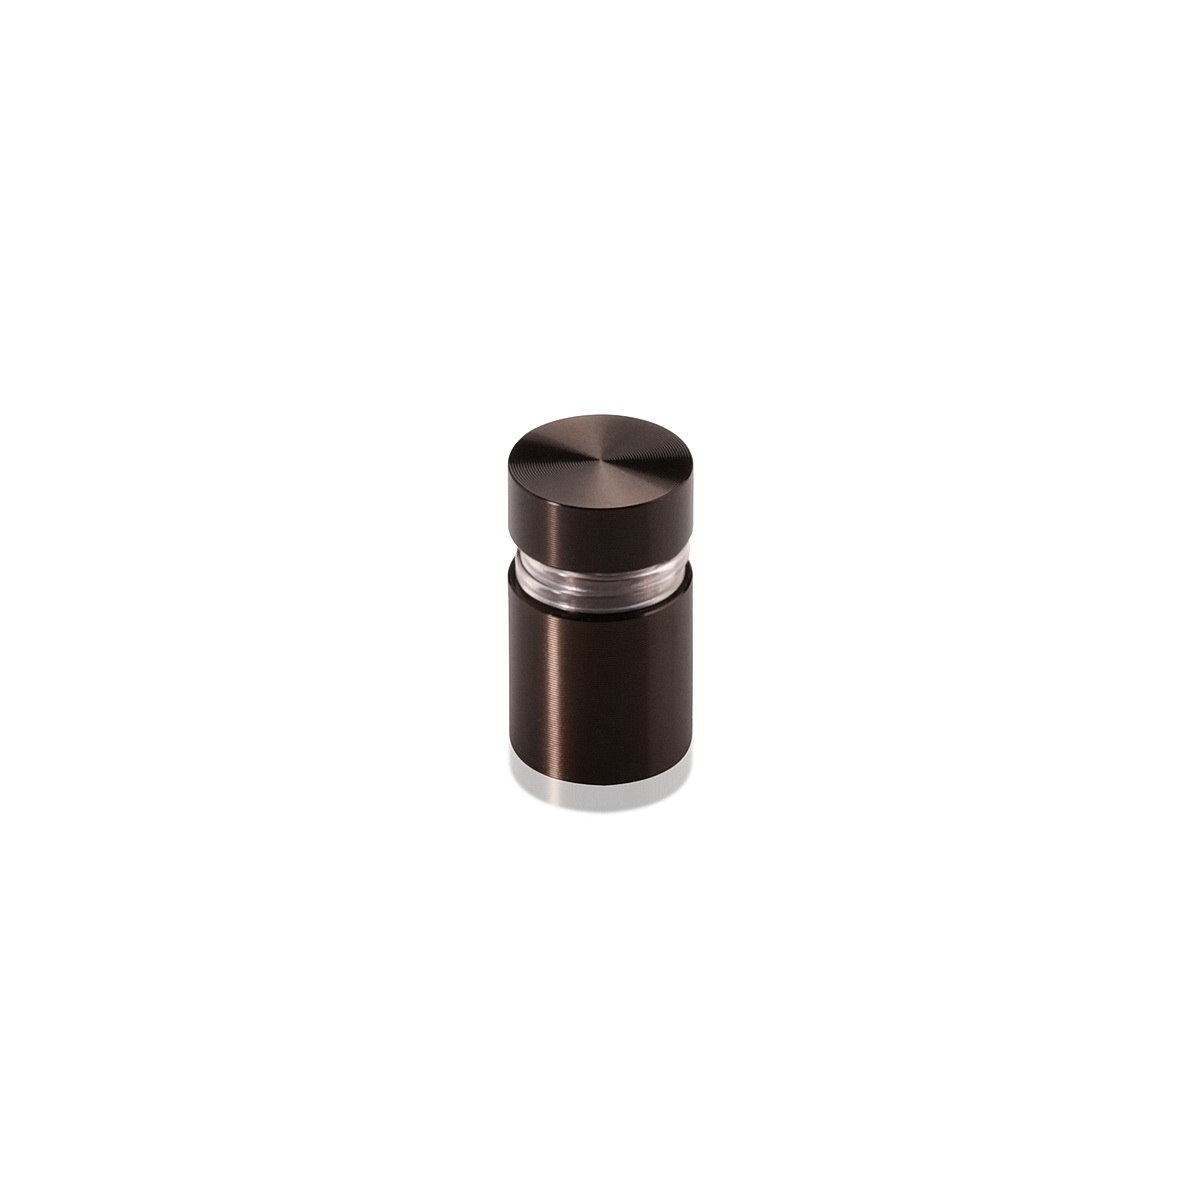 Tamper Proof Aluminum Flat Head Standoffs, Diameter: 1/2'', Standoff: 1/2'', Bronze Anodized Finish